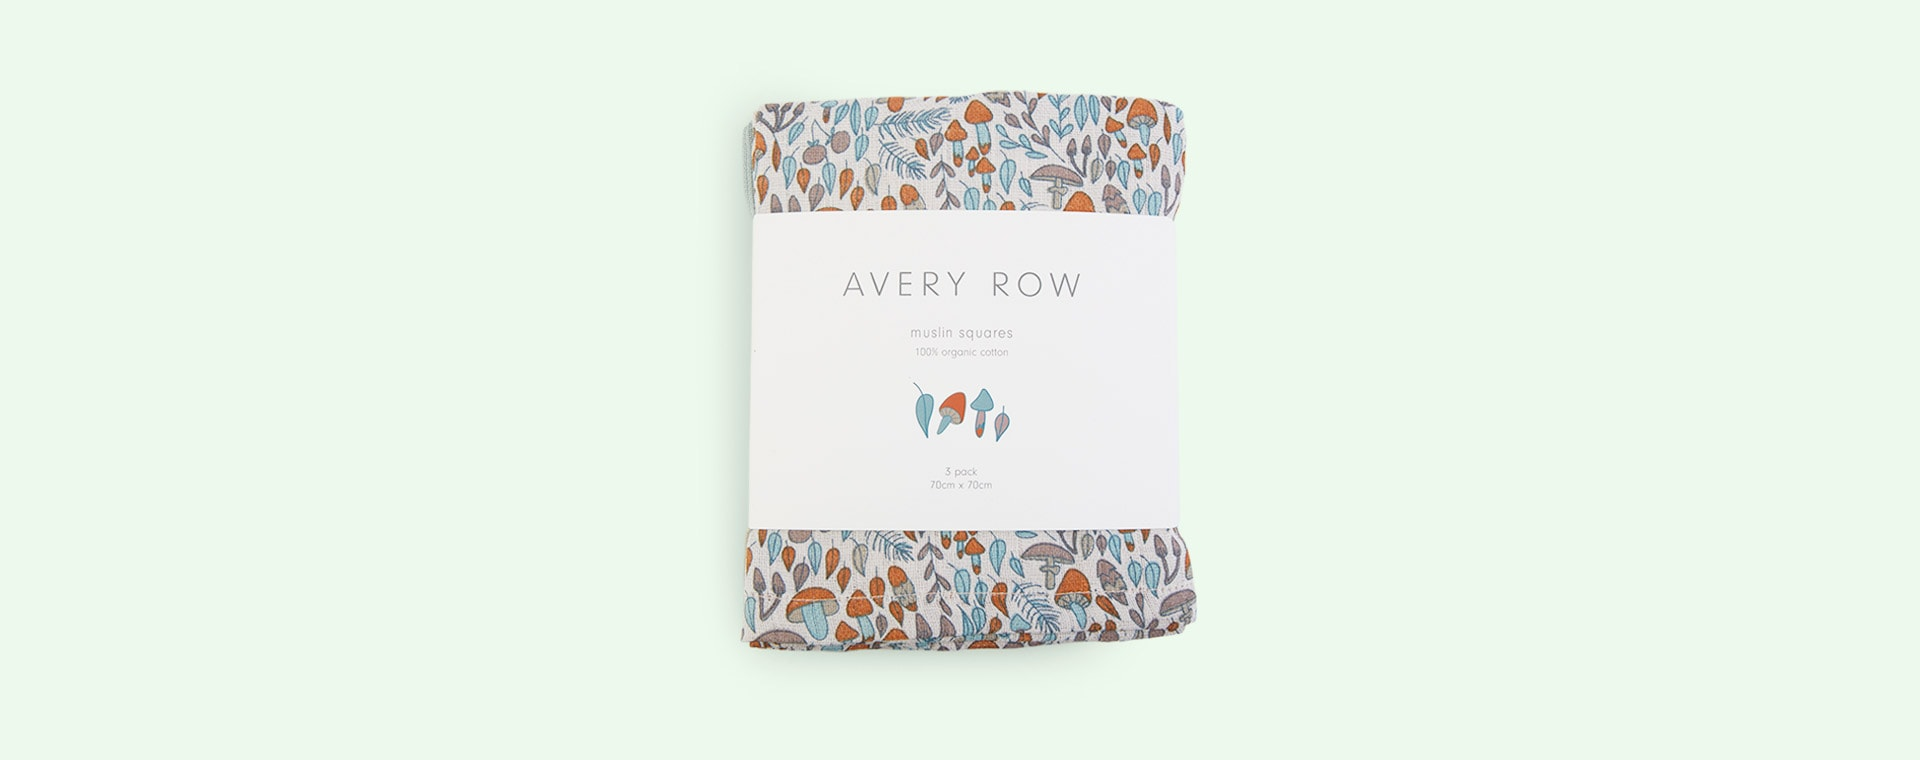 Woodland Walk Avery Row 3-Pack Muslin Squares